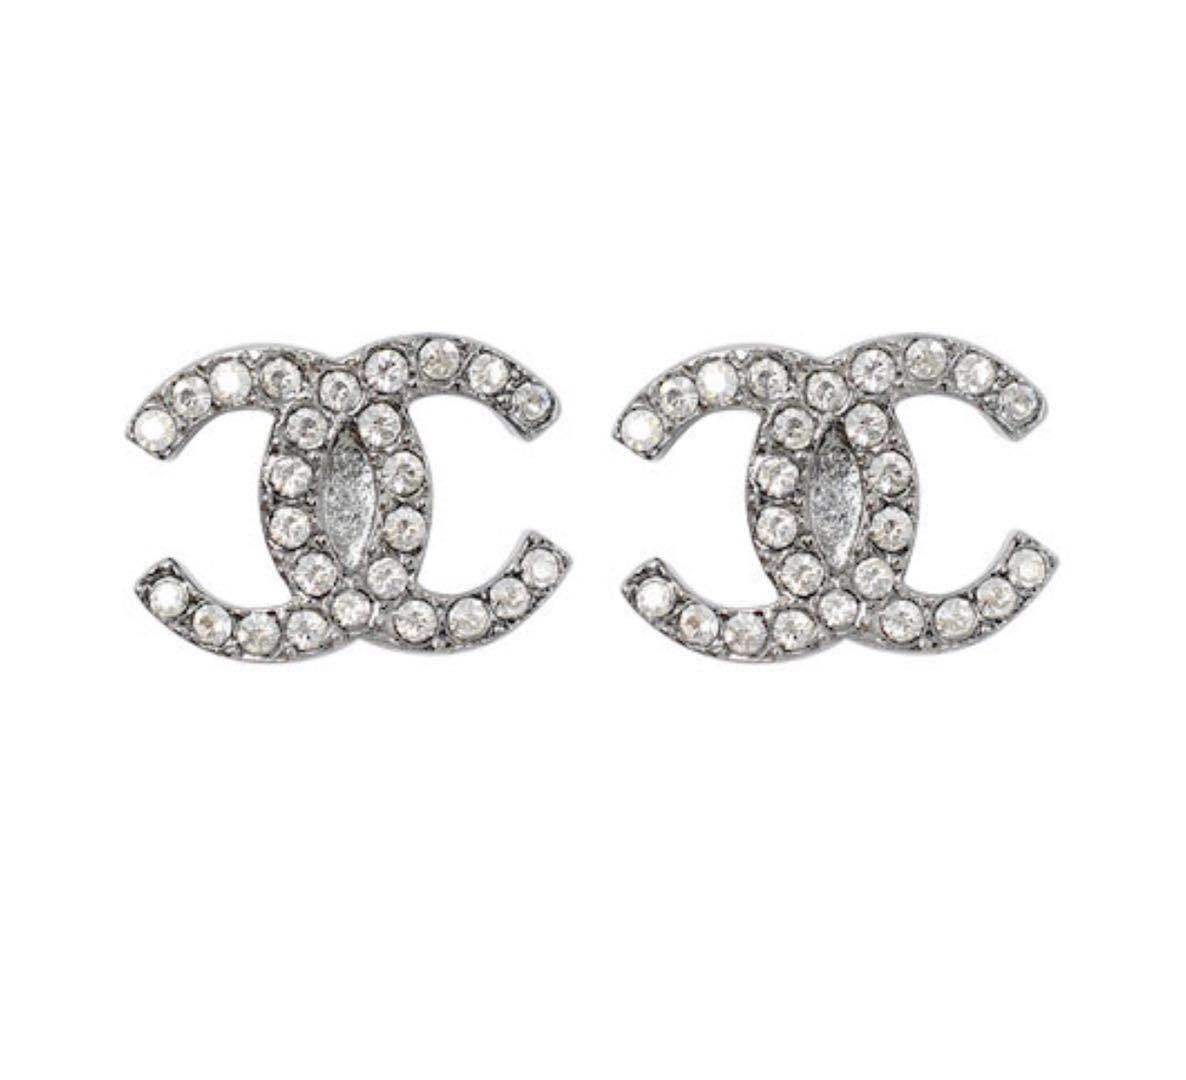 Authentic Chanel CC Logo Crystal Strass Silver Stud Earrings